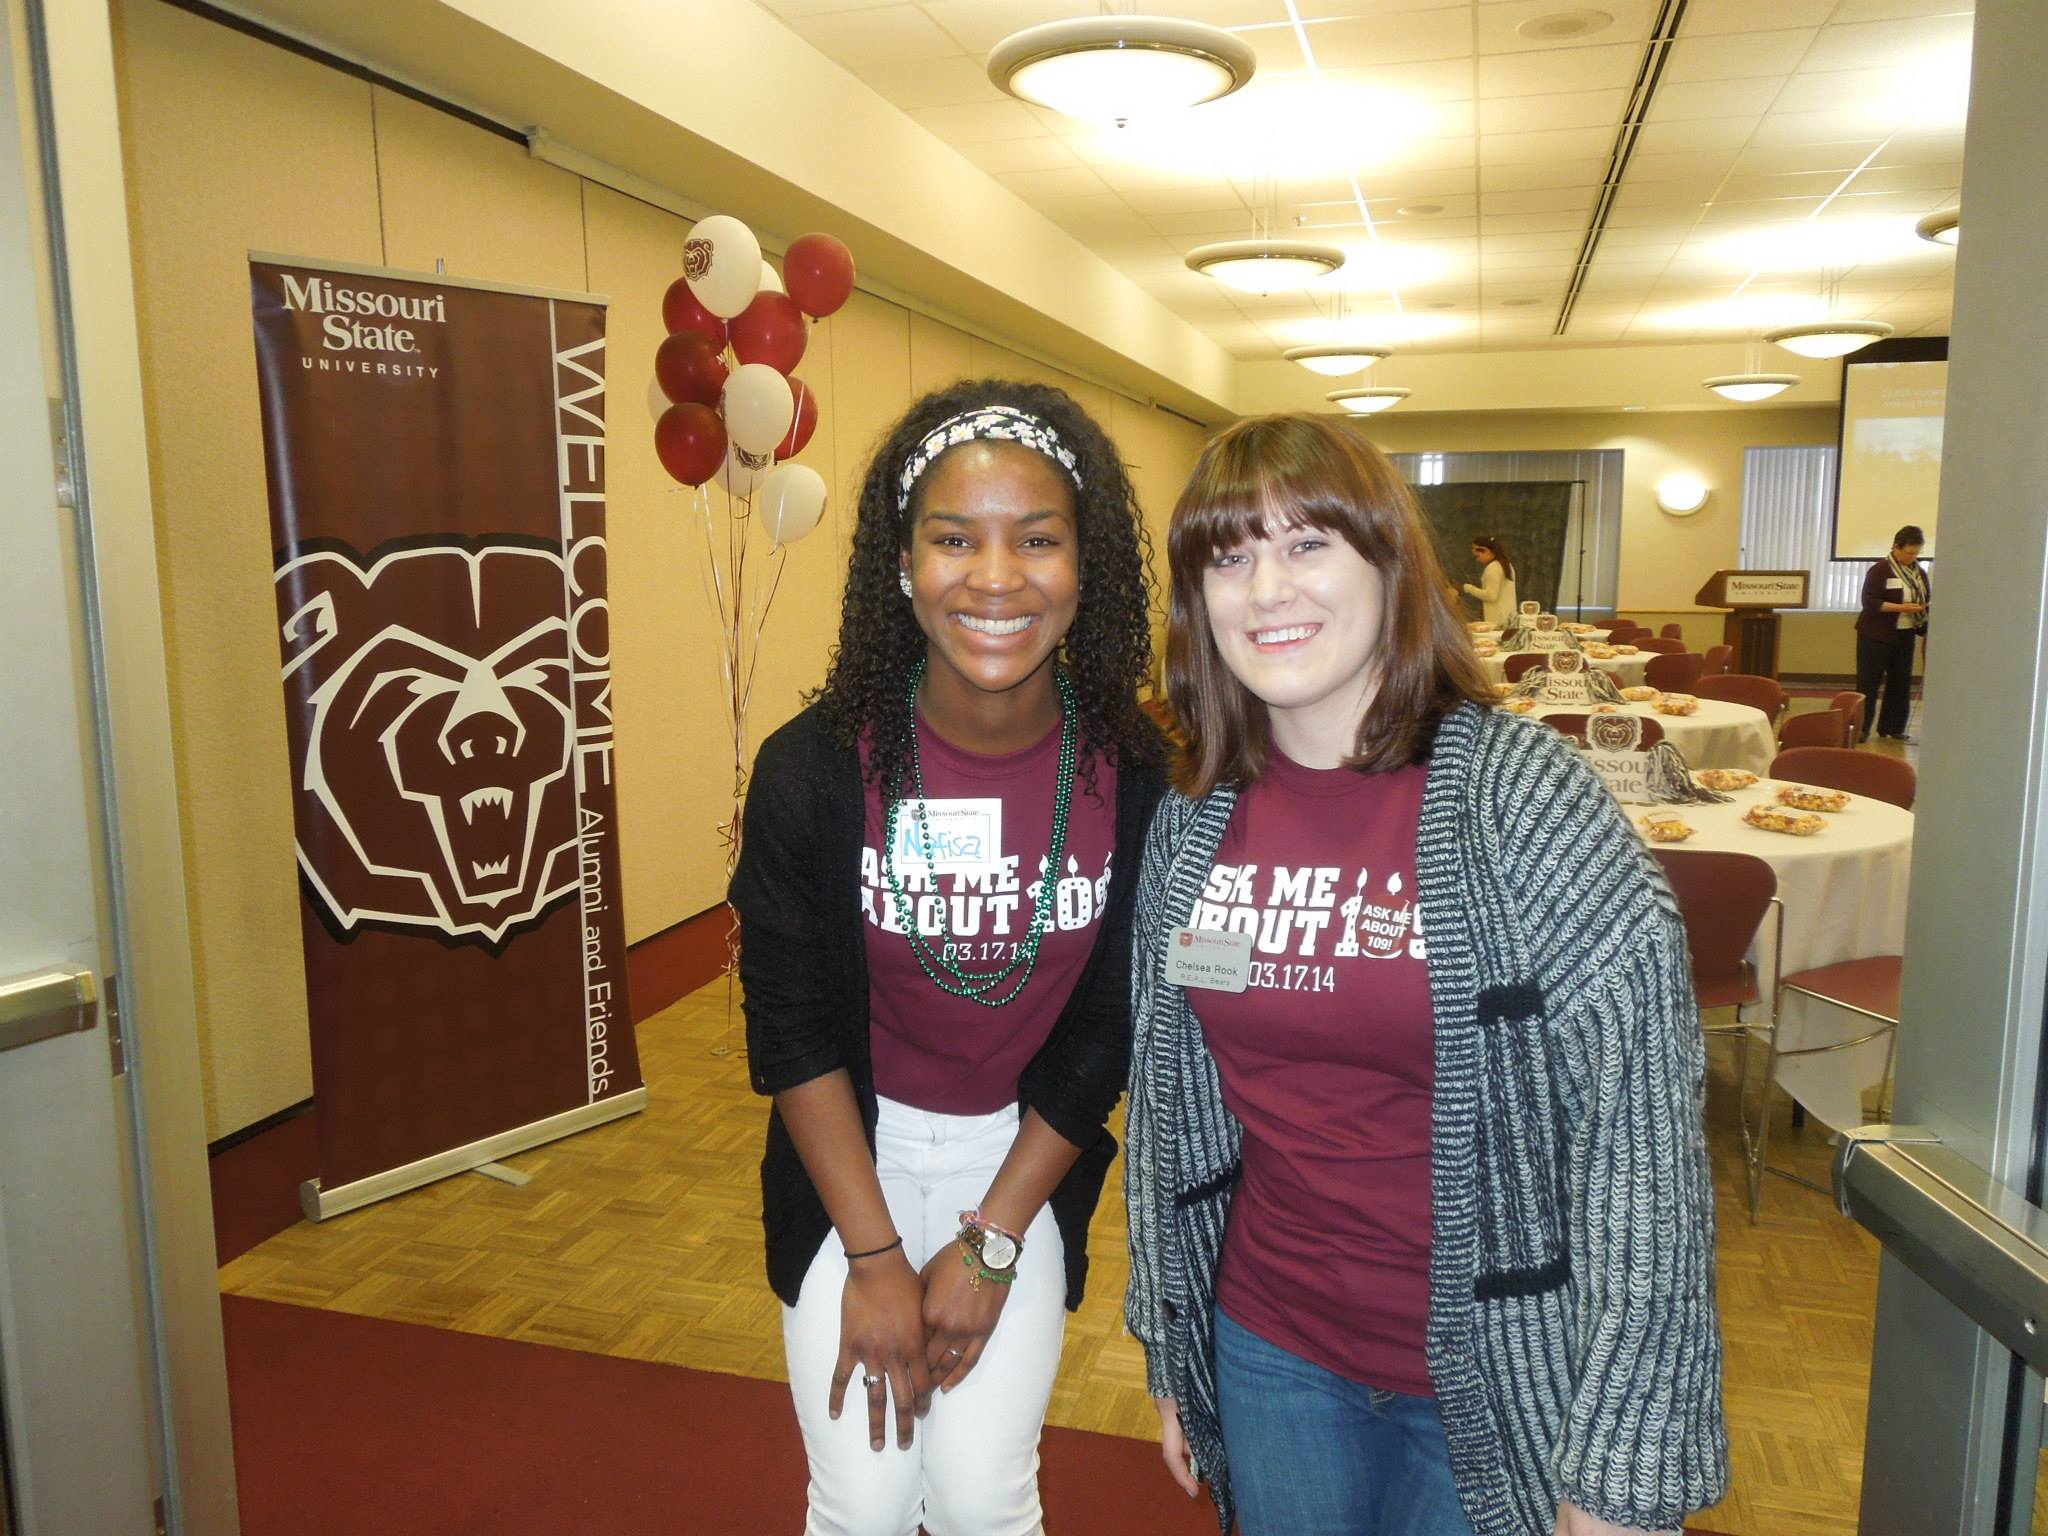 Missouri State Birthday Party Celebration